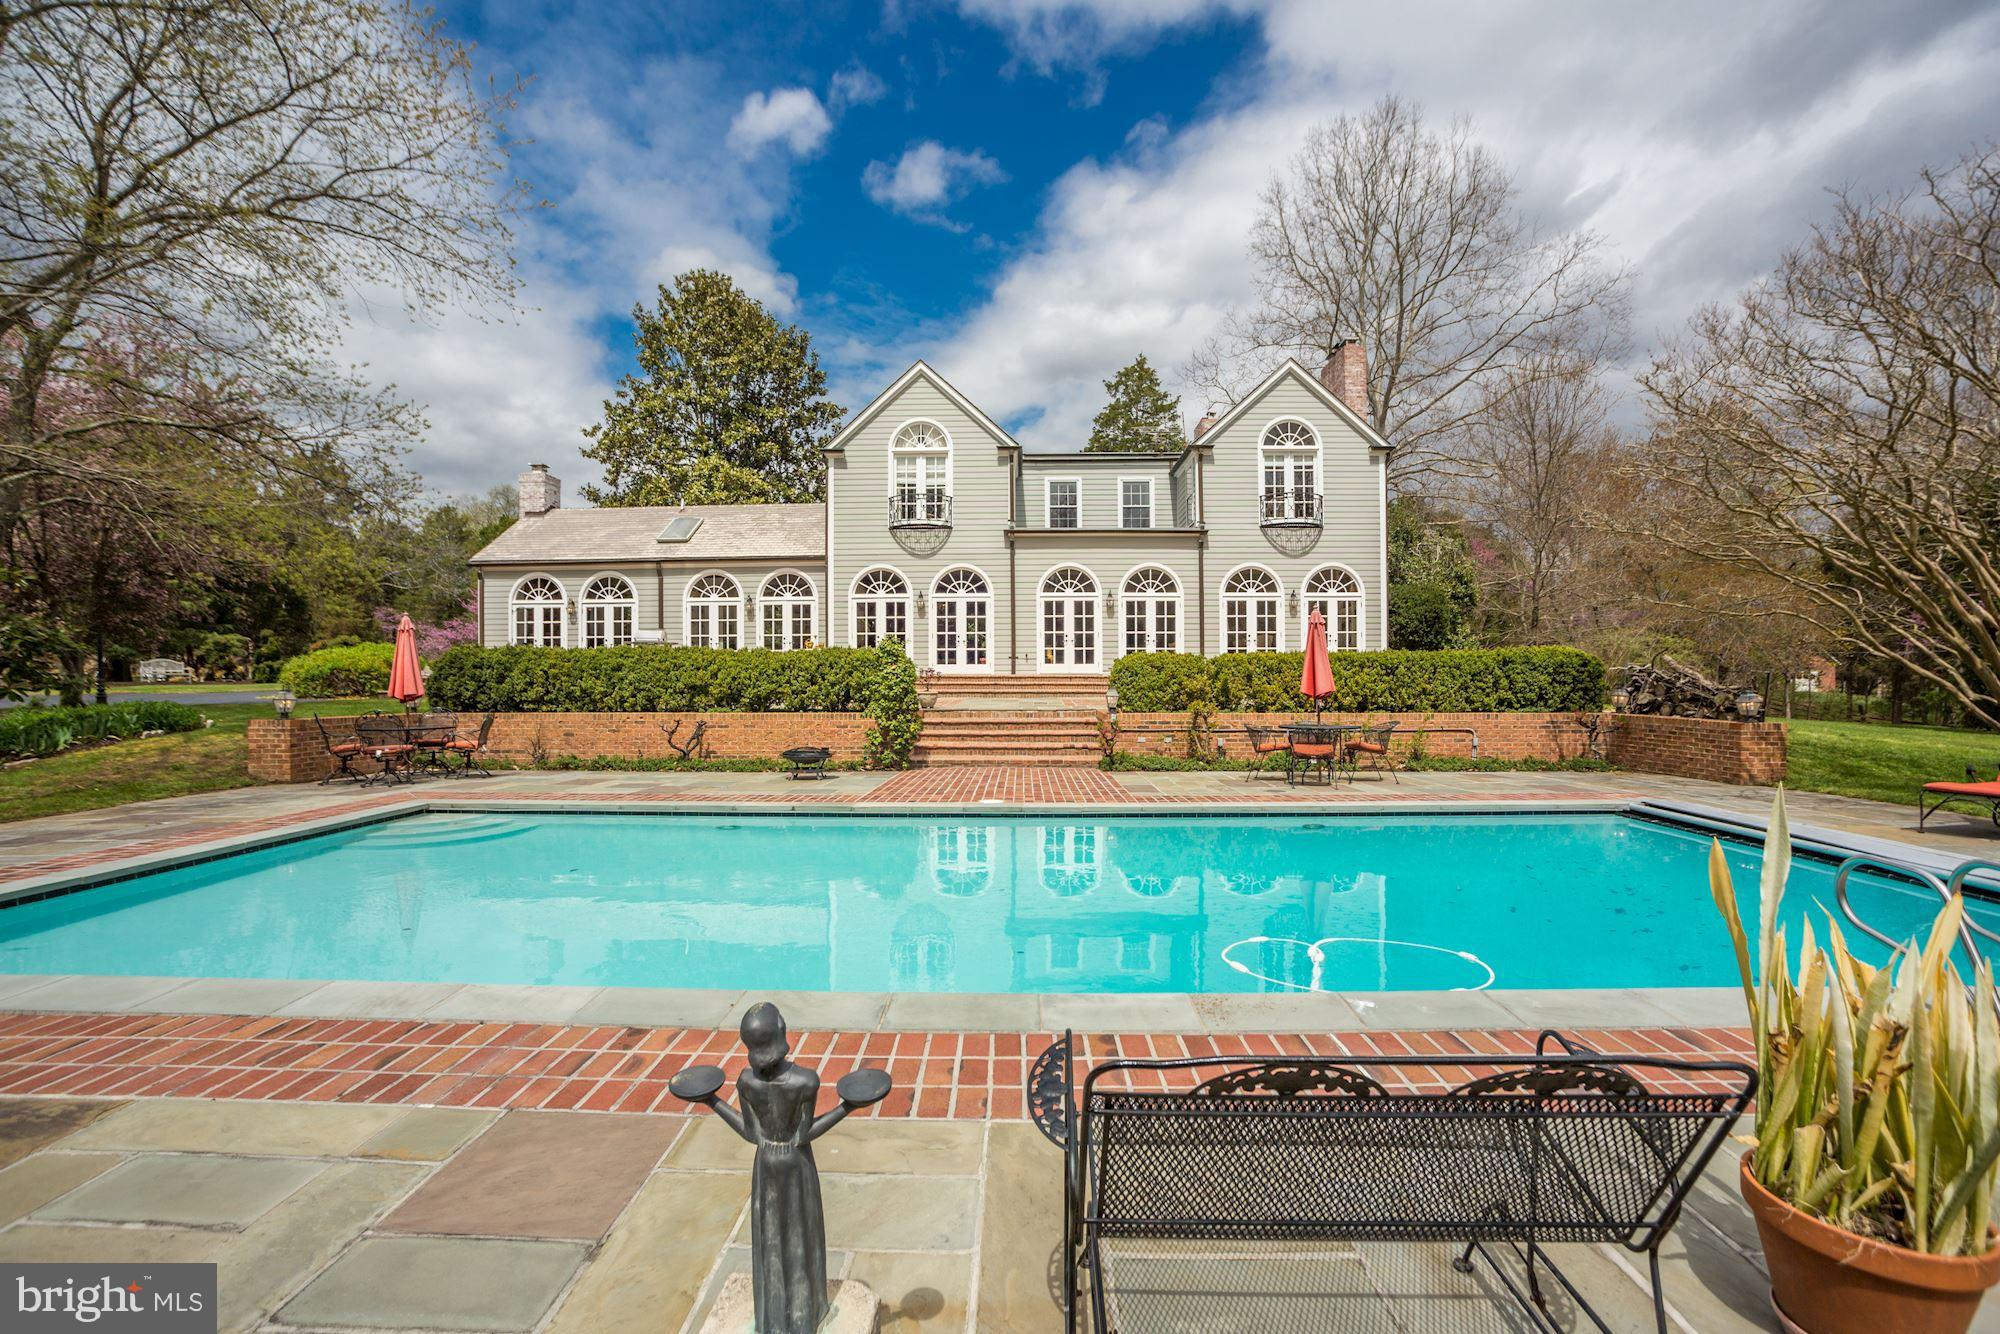 Historic Main house over 5000 ft has been renovated to perfection 3 baths in '16; Total Kitchen in '11; Entire back of home has 10 set of palladium french doors; wide-planked wooden floors; 4 Frpl & Dental trim;+ Pool redone '10, Tennis court '13 & German Bank Barn w/ 2 car gar. workshop/storage, LL room for tractor, cars & boat, 3rd lvl is for office. close to Park* A treat to the Eye & the Soul